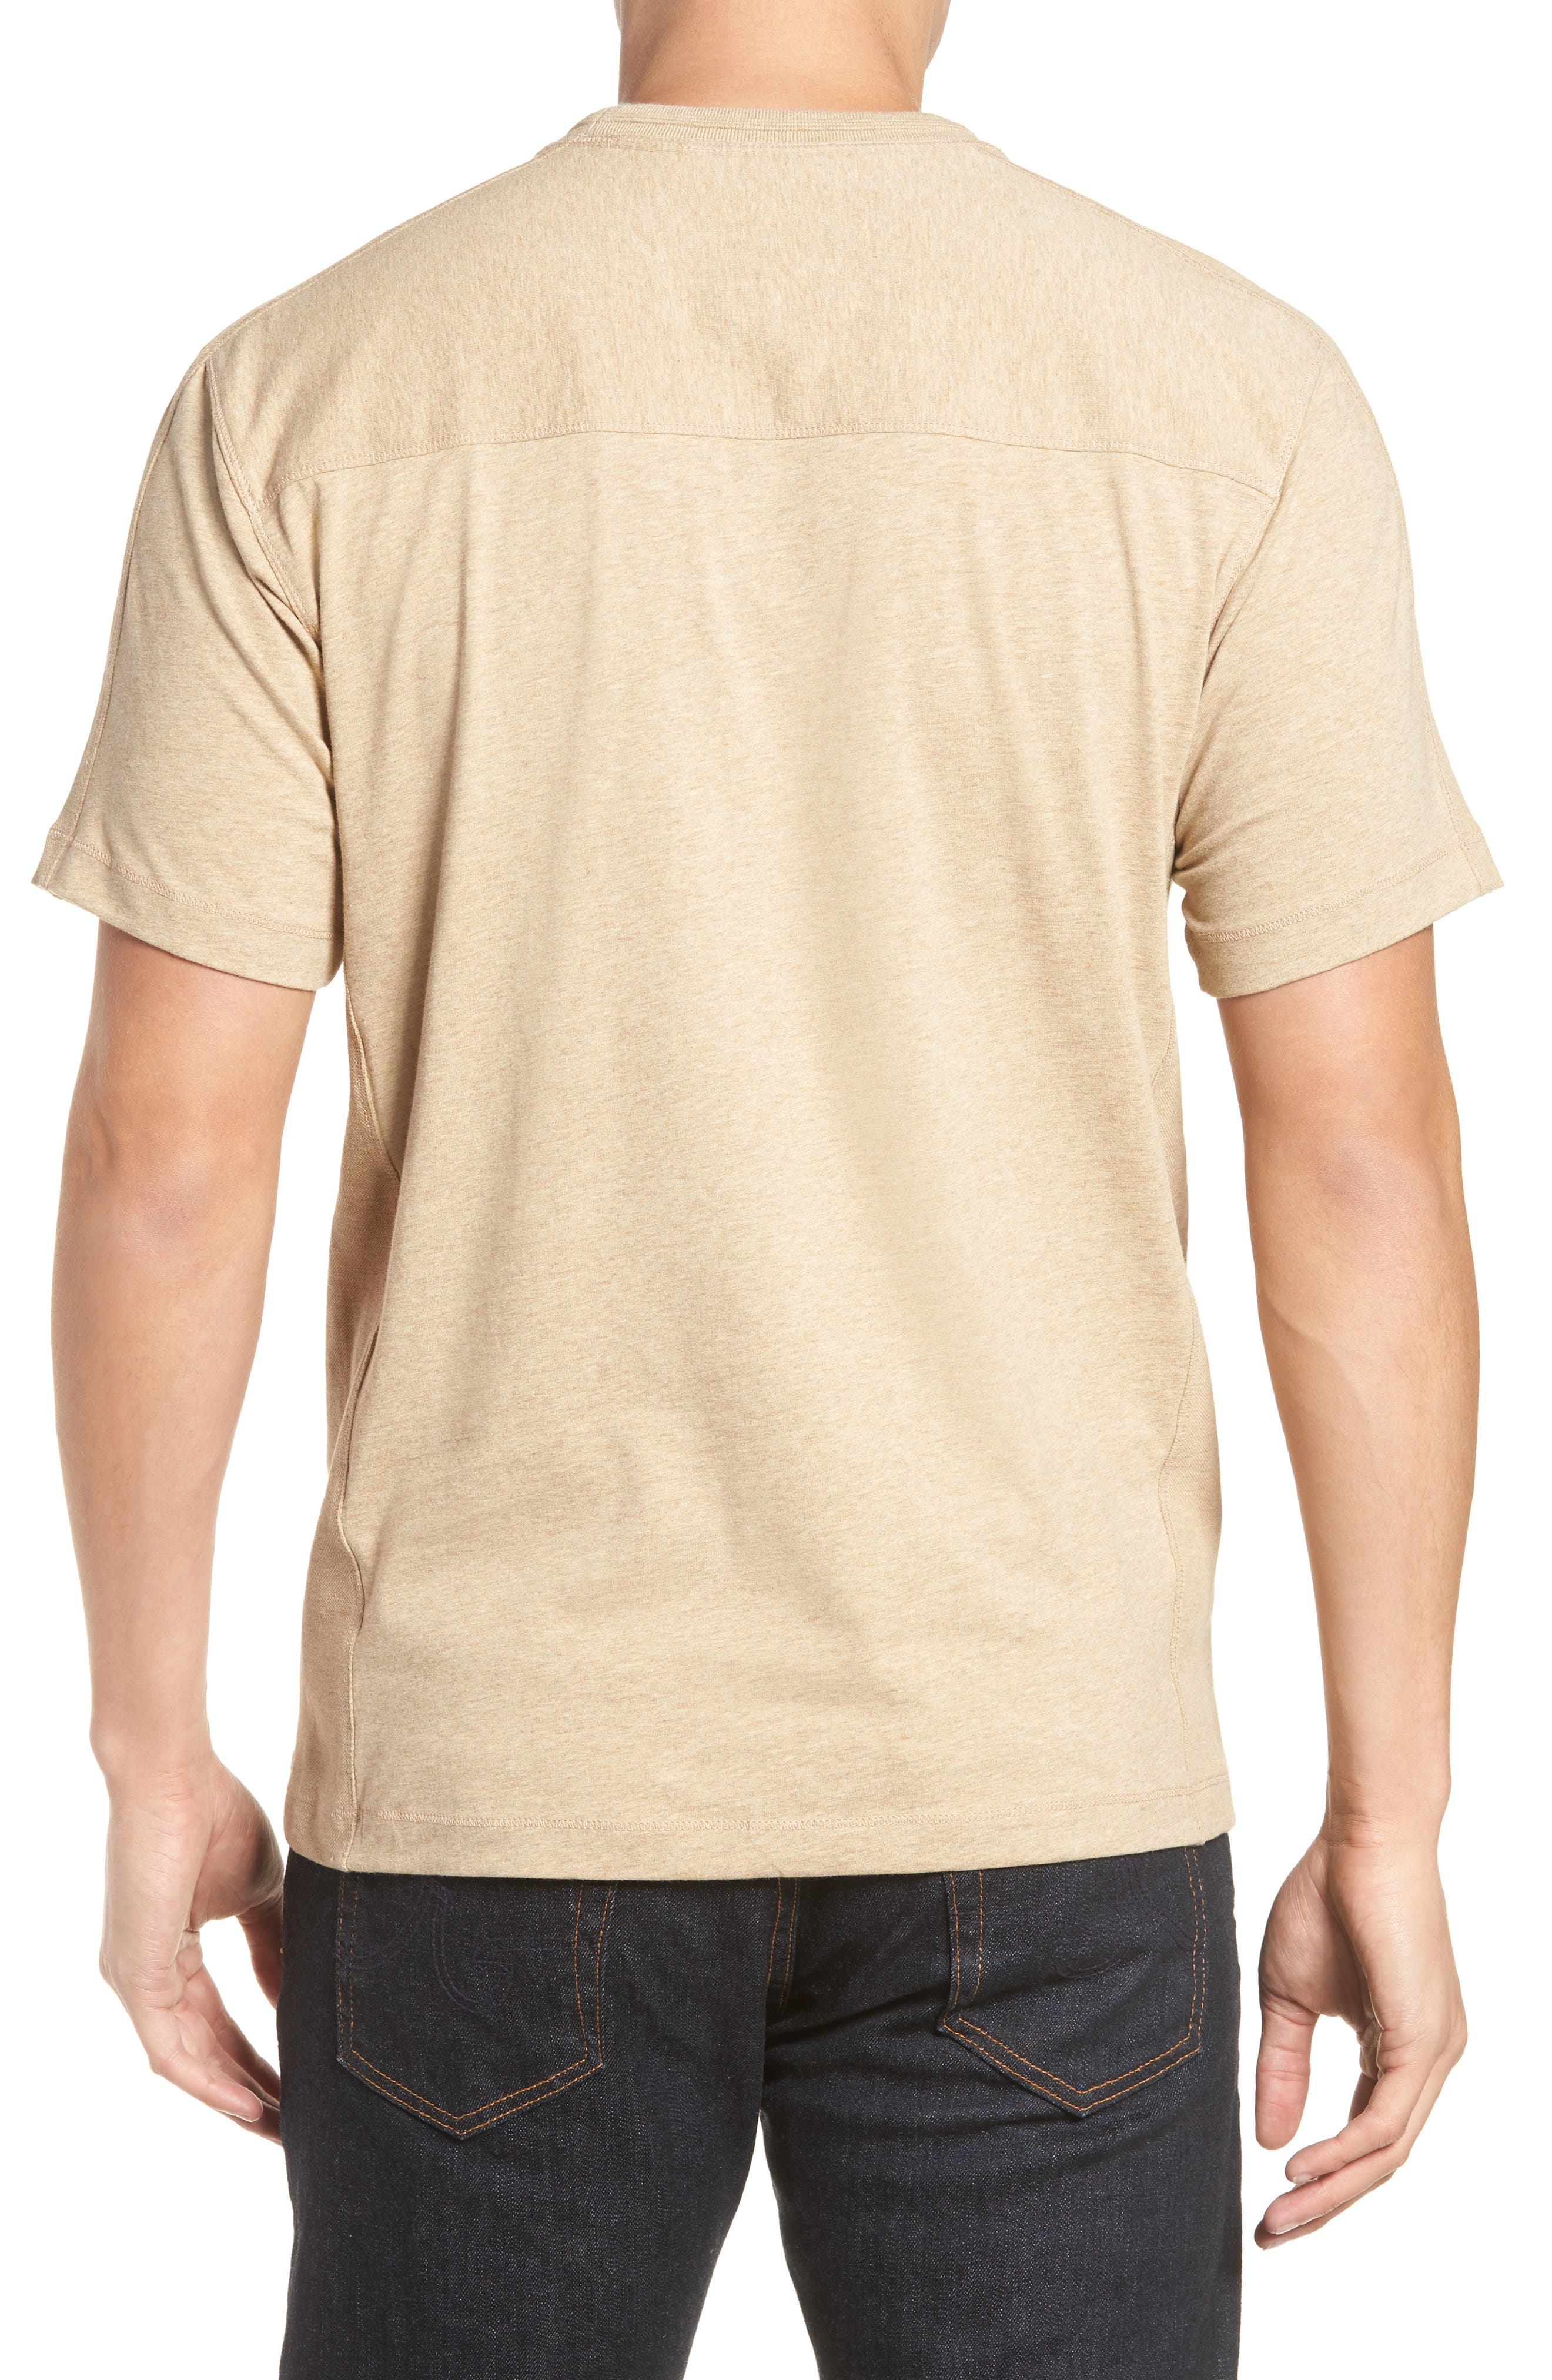 Steve Stretch Jersey T-Shirt,                             Alternate thumbnail 6, color,